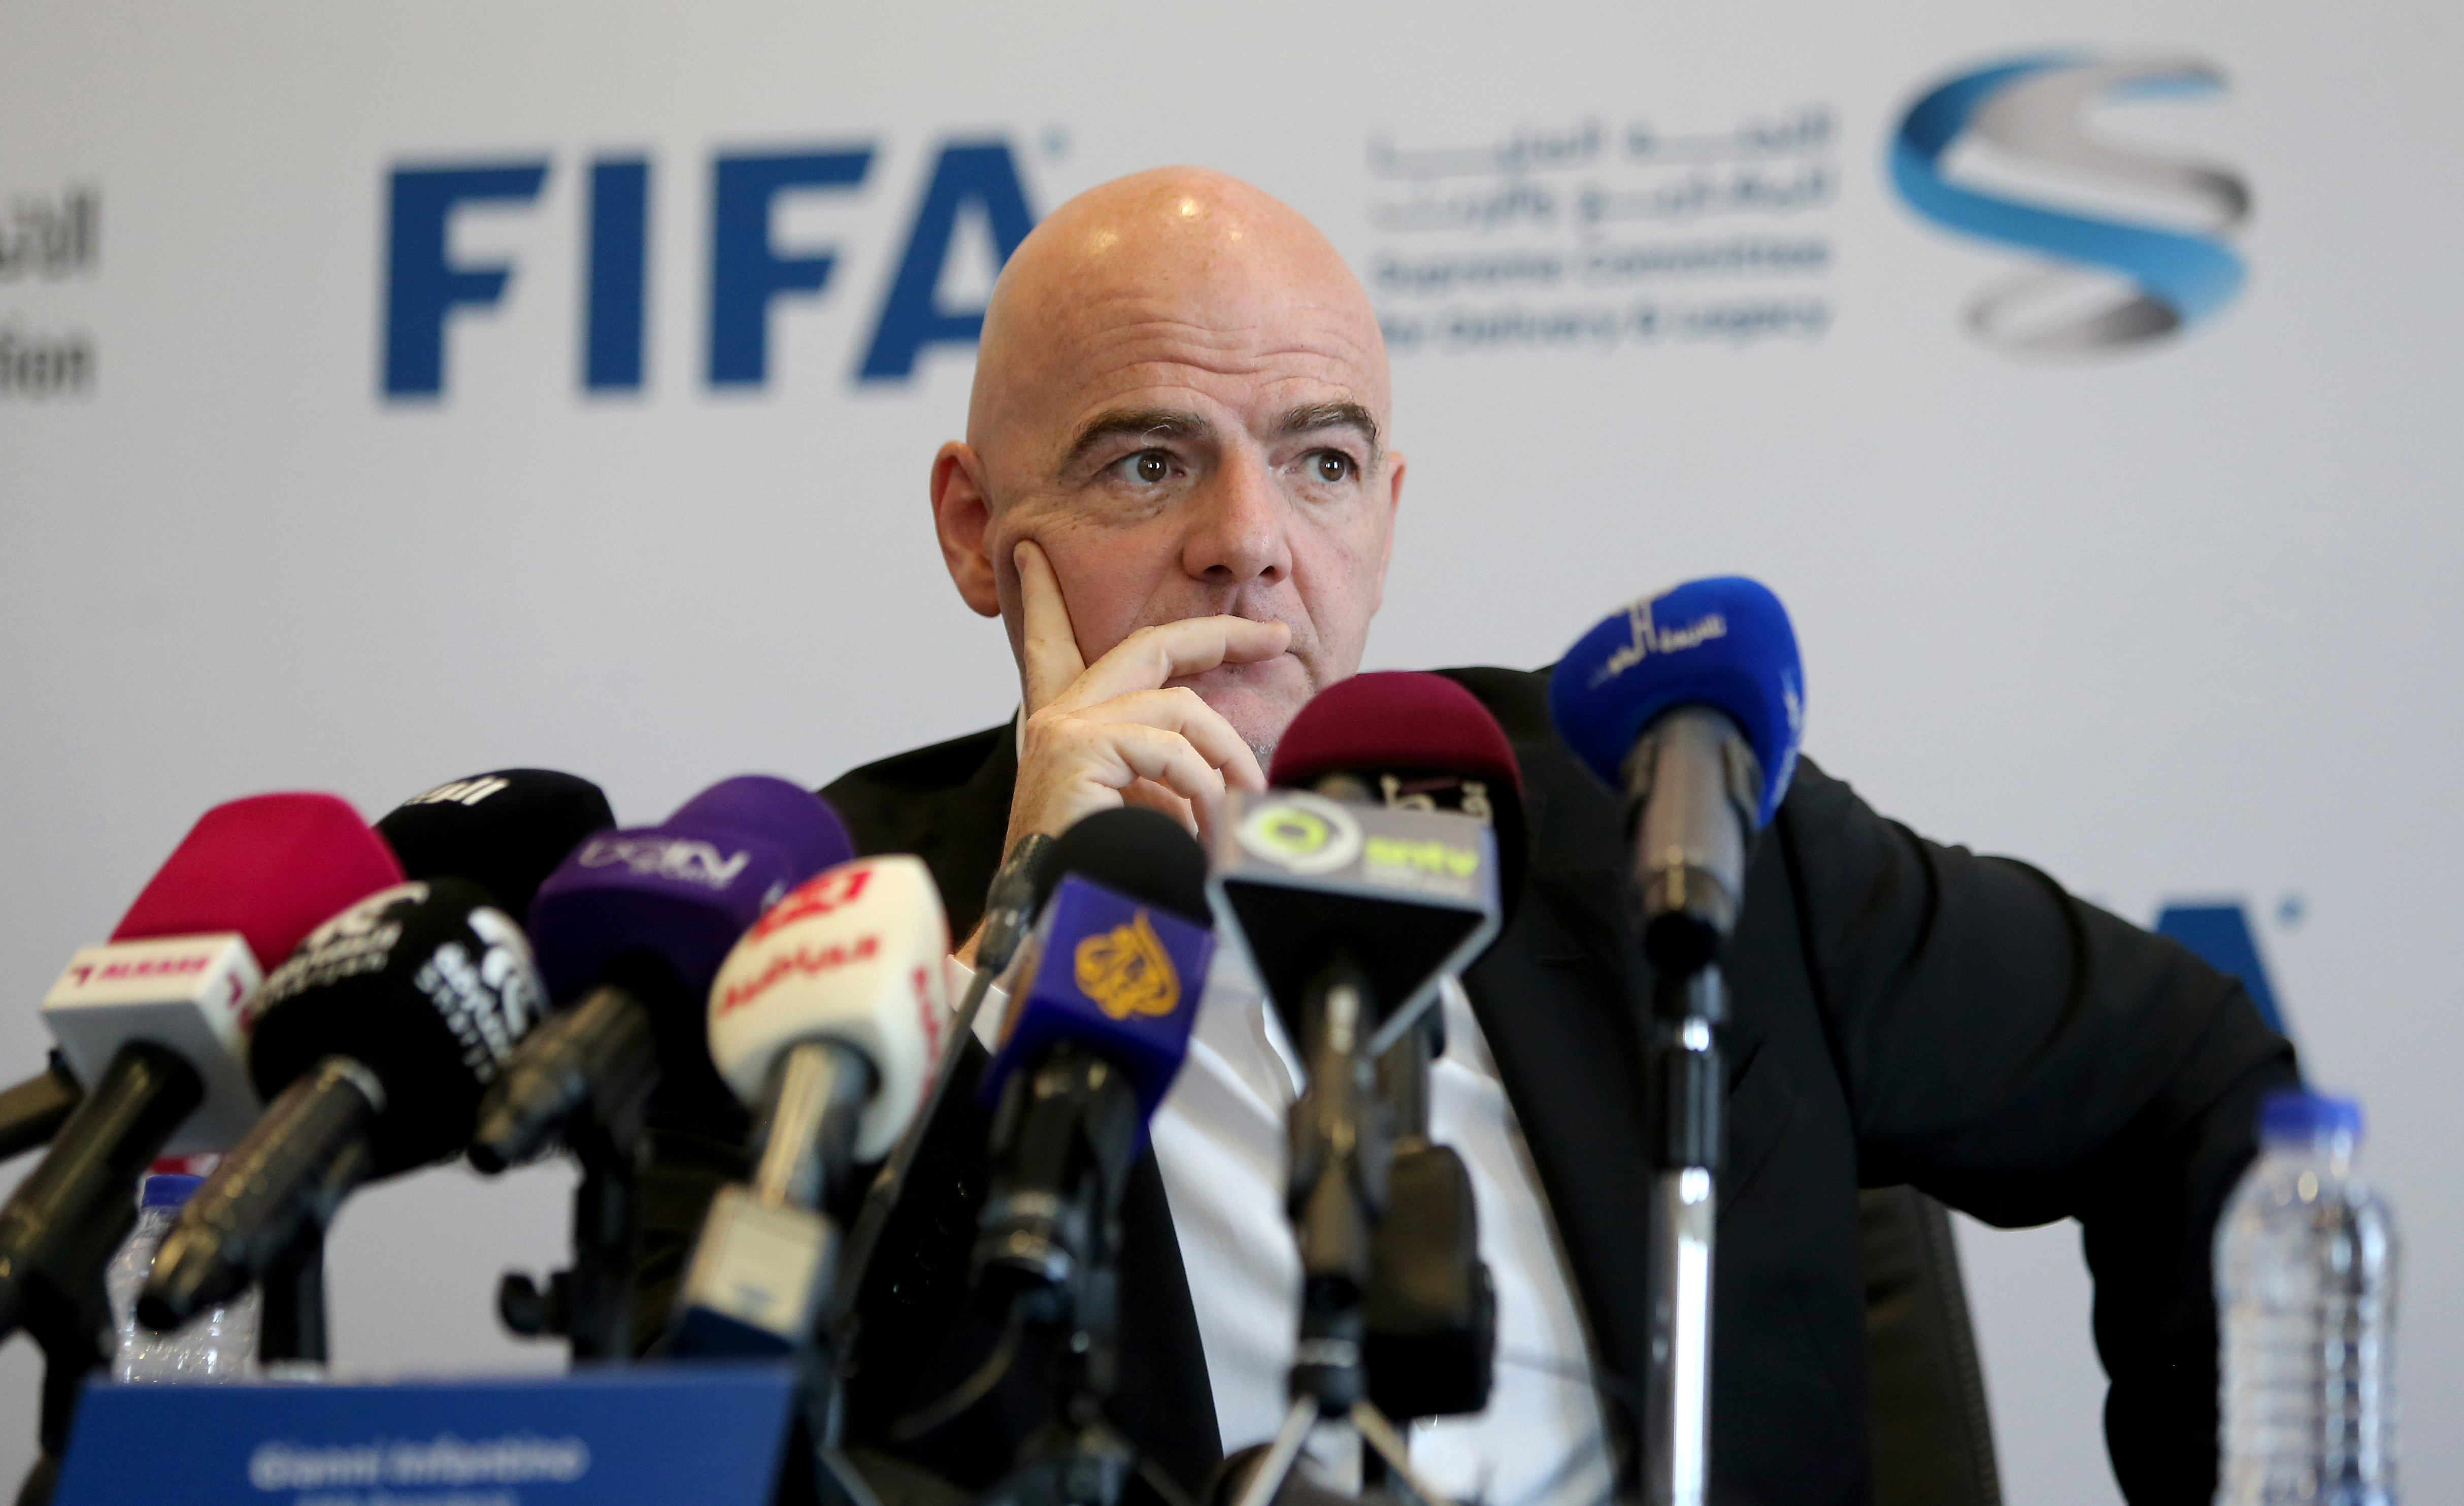 "FIFA President Gianni Infantino attends a press conference in the Qatari capital Doha on April 22, 2016. Infantino announced that a new independent committee would be set up to monitor conditions for labourers working to build stadia for the 2022 World Cup in Qatar. Speaking during his first visit to Doha as head of world football's governing body, Infantino said he was ""confident we are on the right track"" after a string of alleged rights violations during the tournament's construction phase. He said the new committee ""shows that the mechanisms in place are working related to FIFA World Cup"". / AFP PHOTO / KARIM JAAFAR"